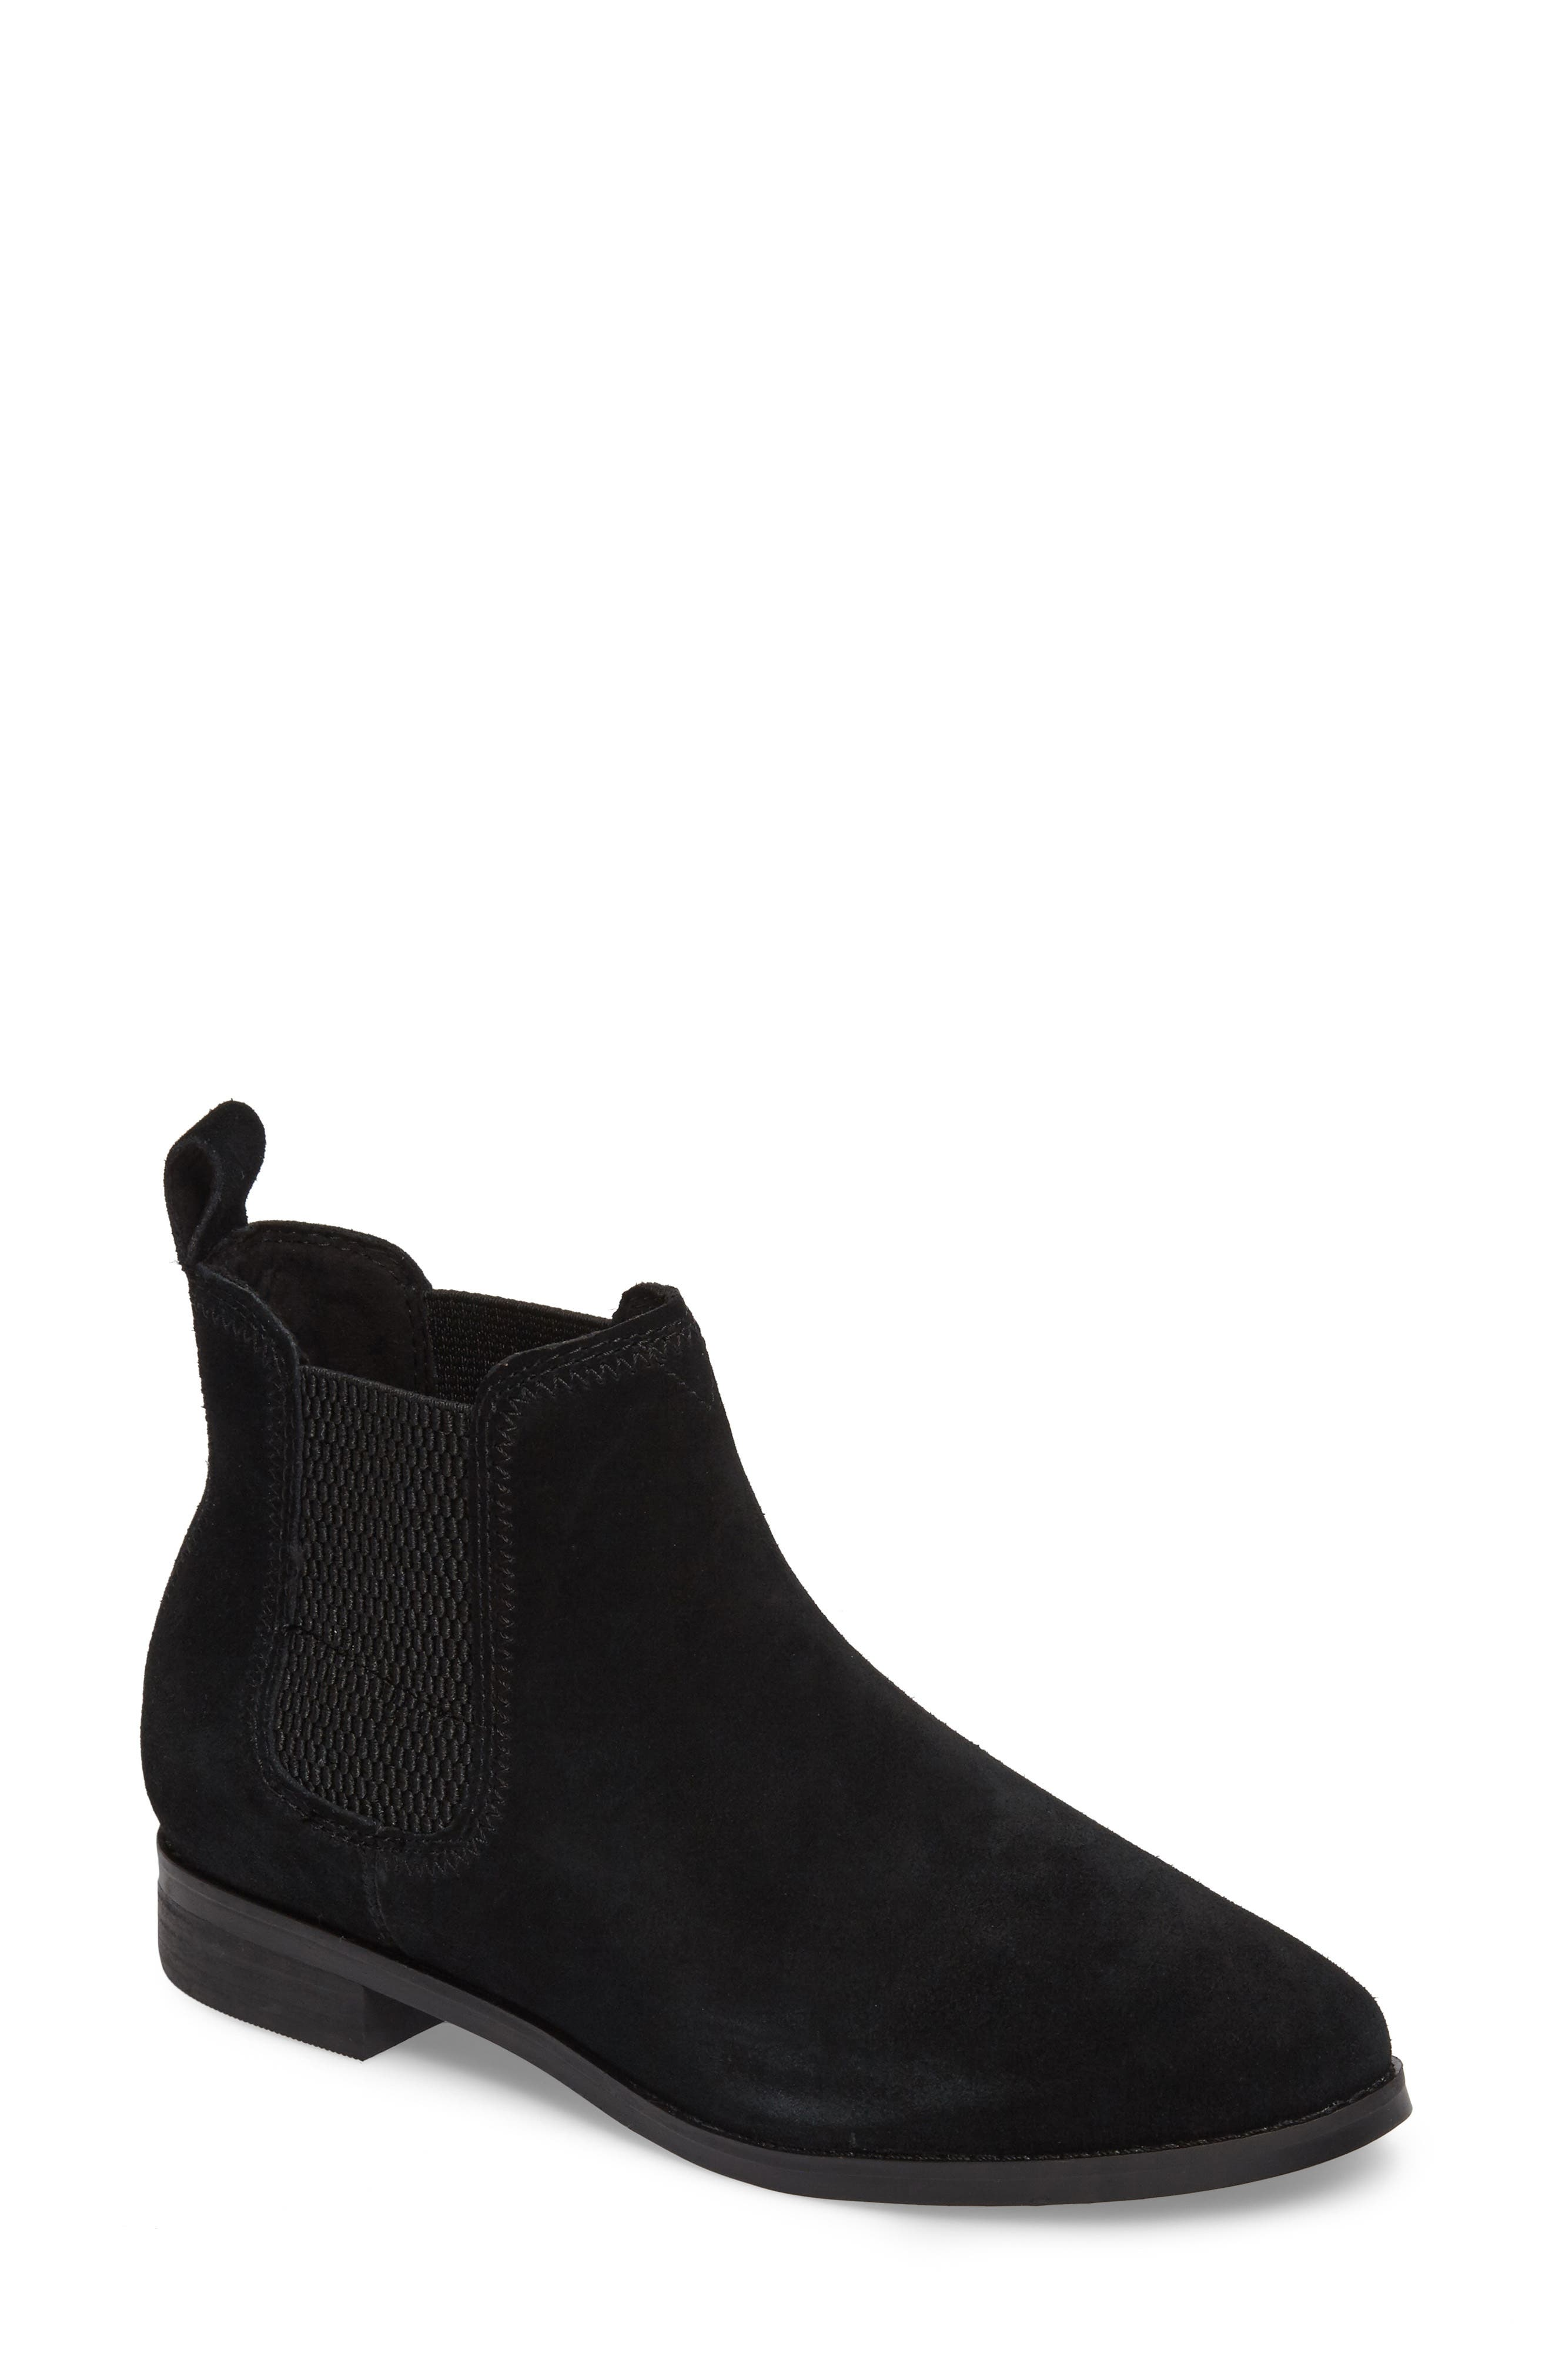 Ella Bootie,                         Main,                         color, Black Suede